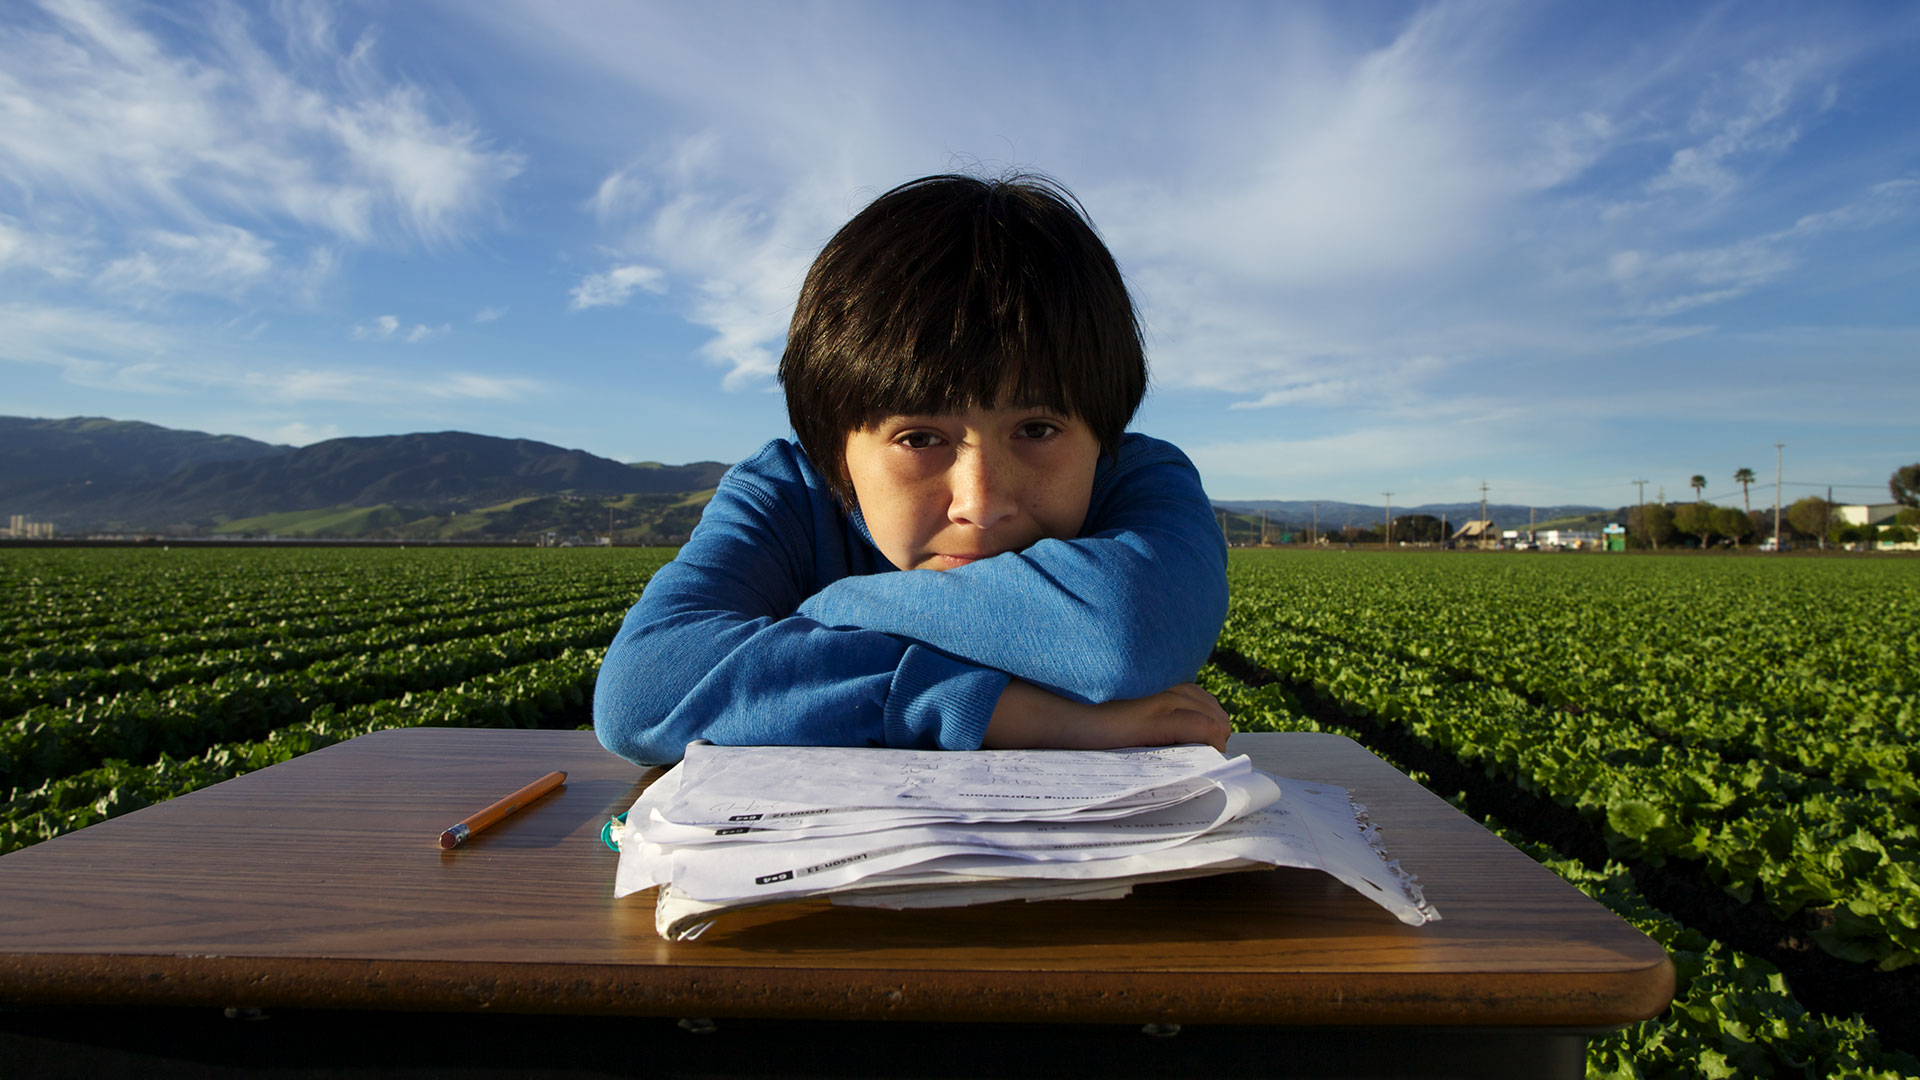 TRAILER: 'East of Salinas' Profiles an Undocumented 8-Year-Old Math Whiz